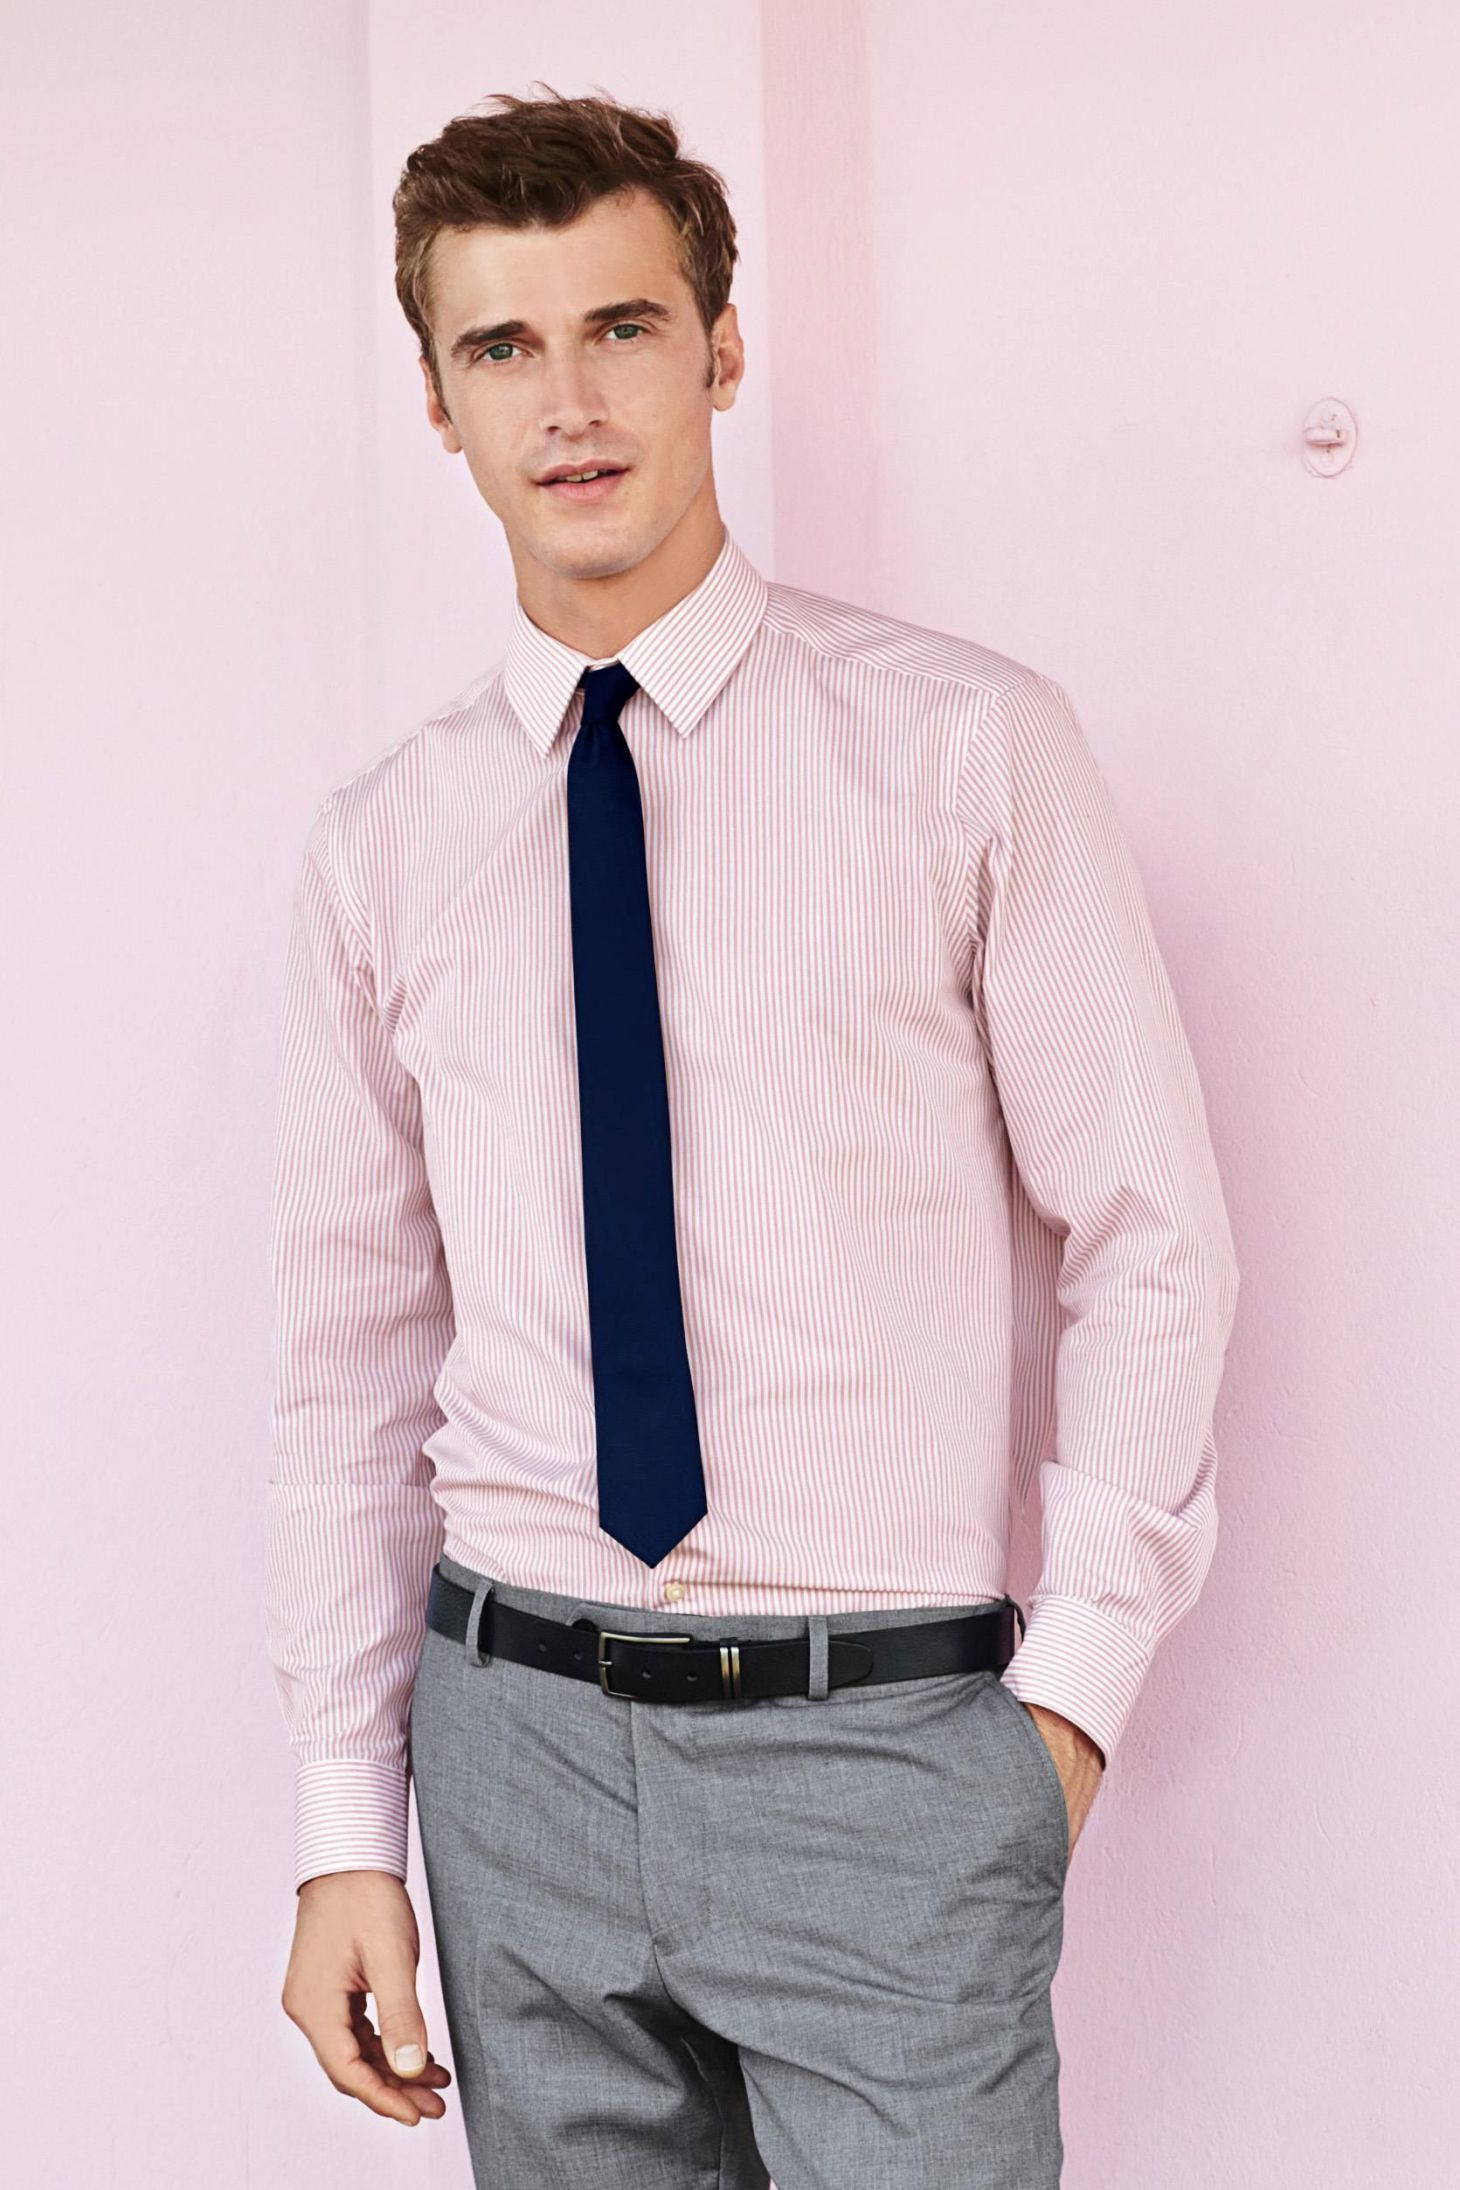 How To Wear a Navy Tie With a Pink Dress Shirt | Men's Fashion